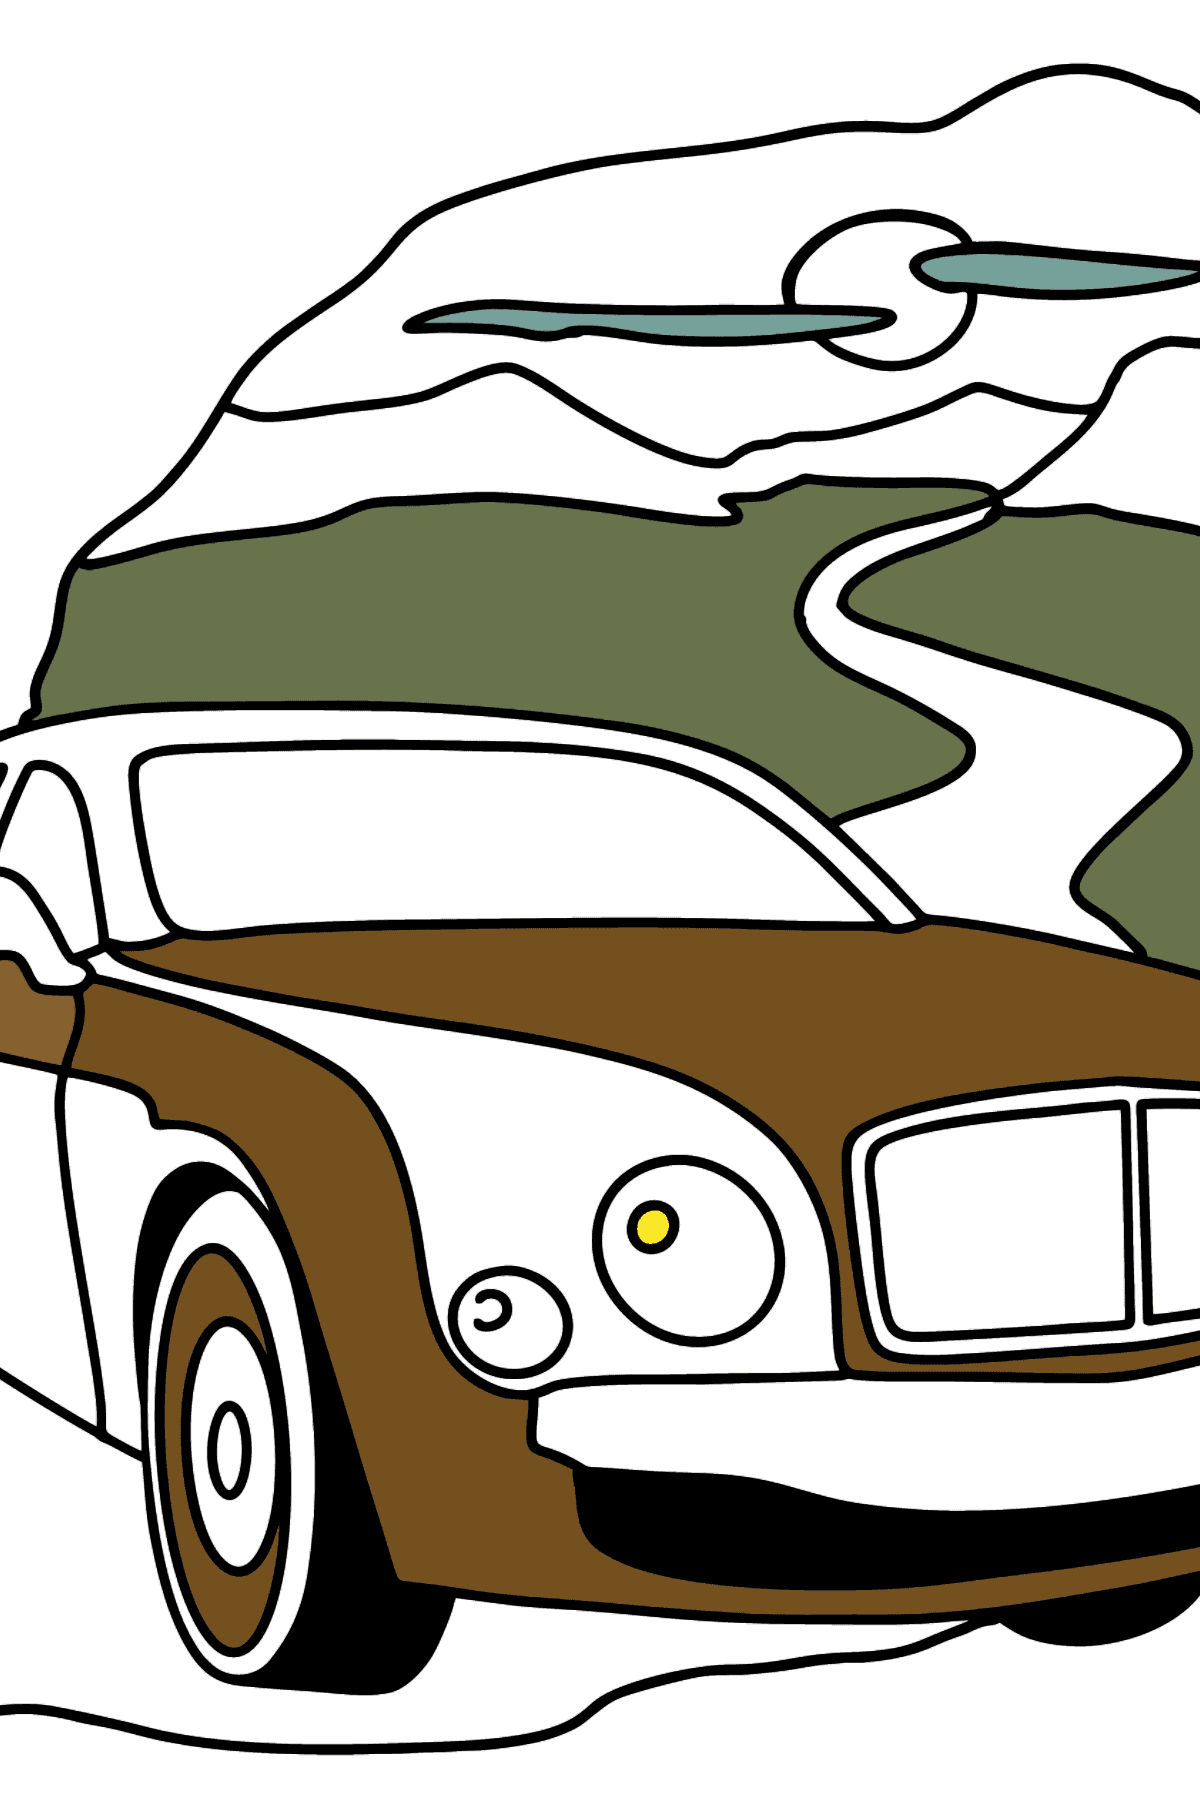 Bentley Mulsanne Car coloring page - Coloring Pages for Kids